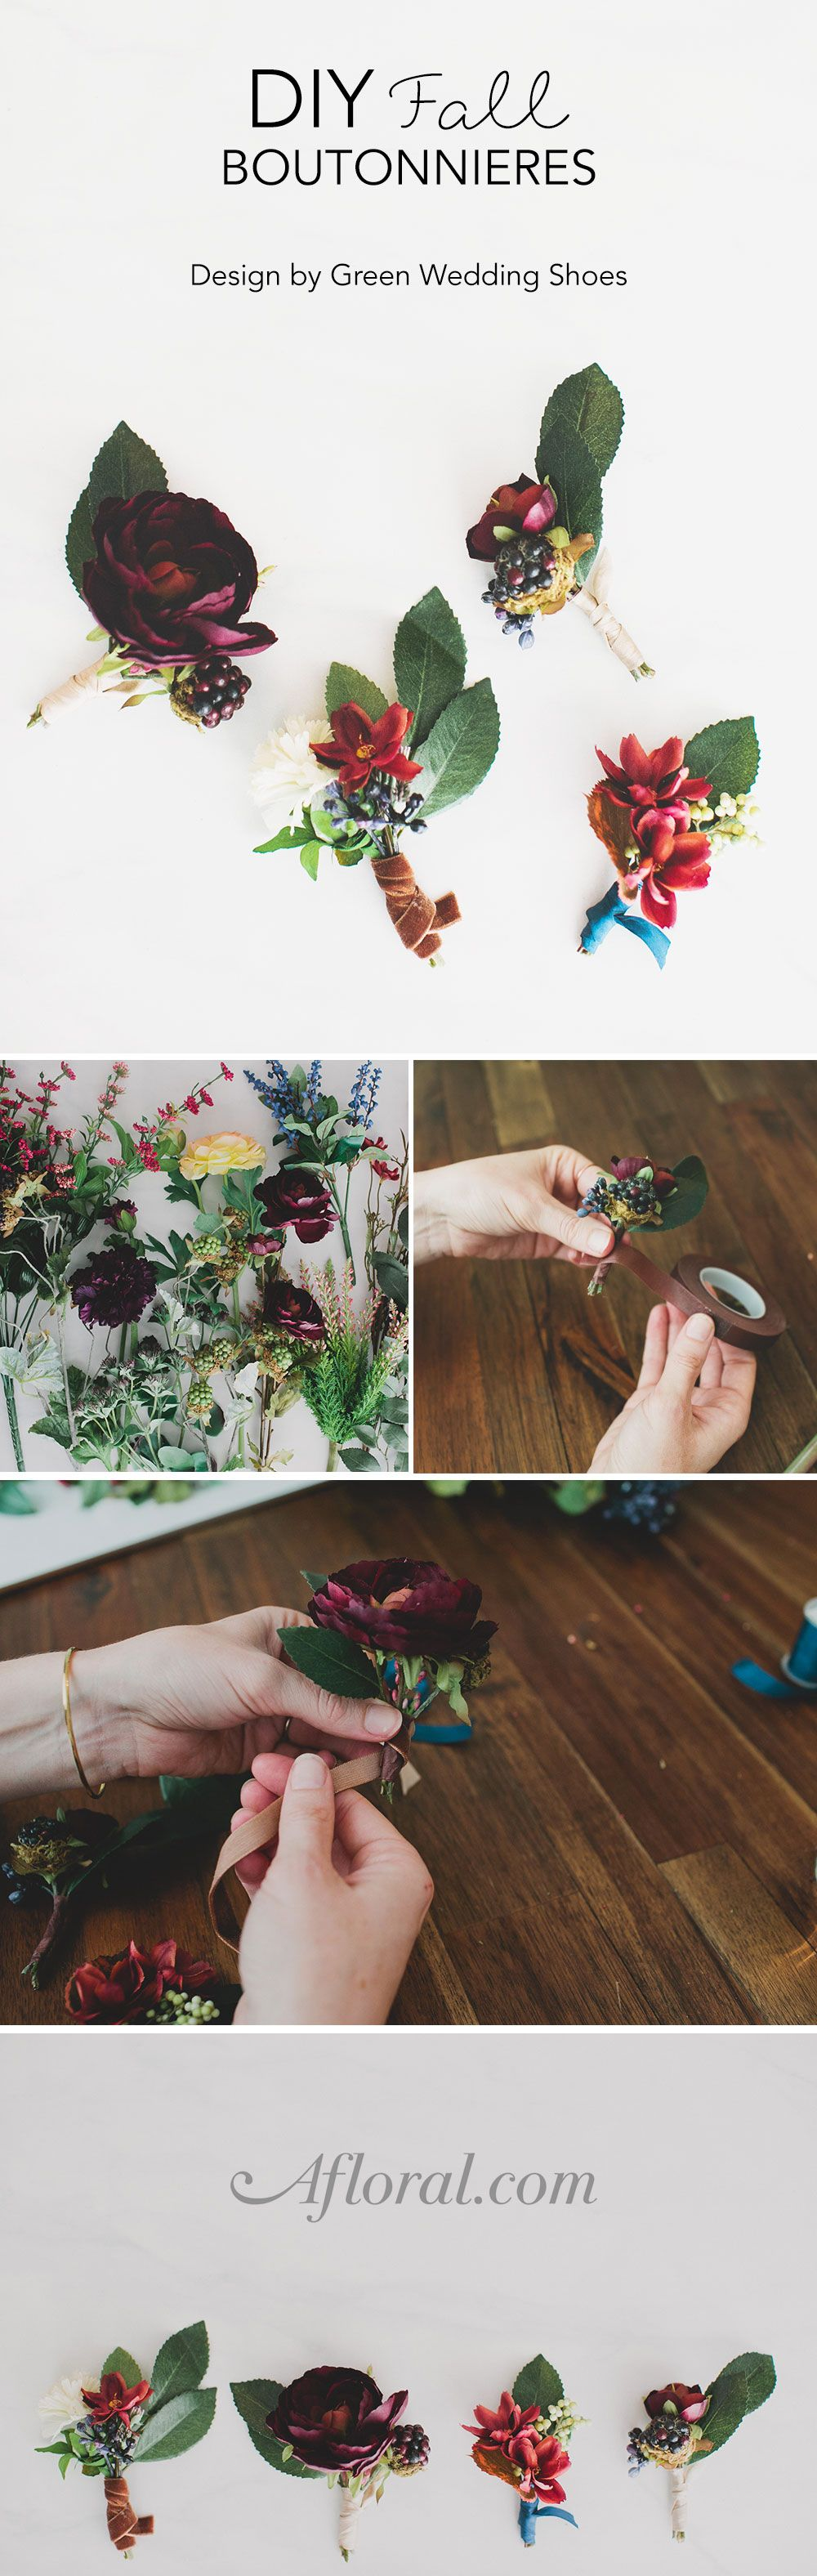 Diy Fall Boutonnieres Wedding Pinterest Green Weddings Silk